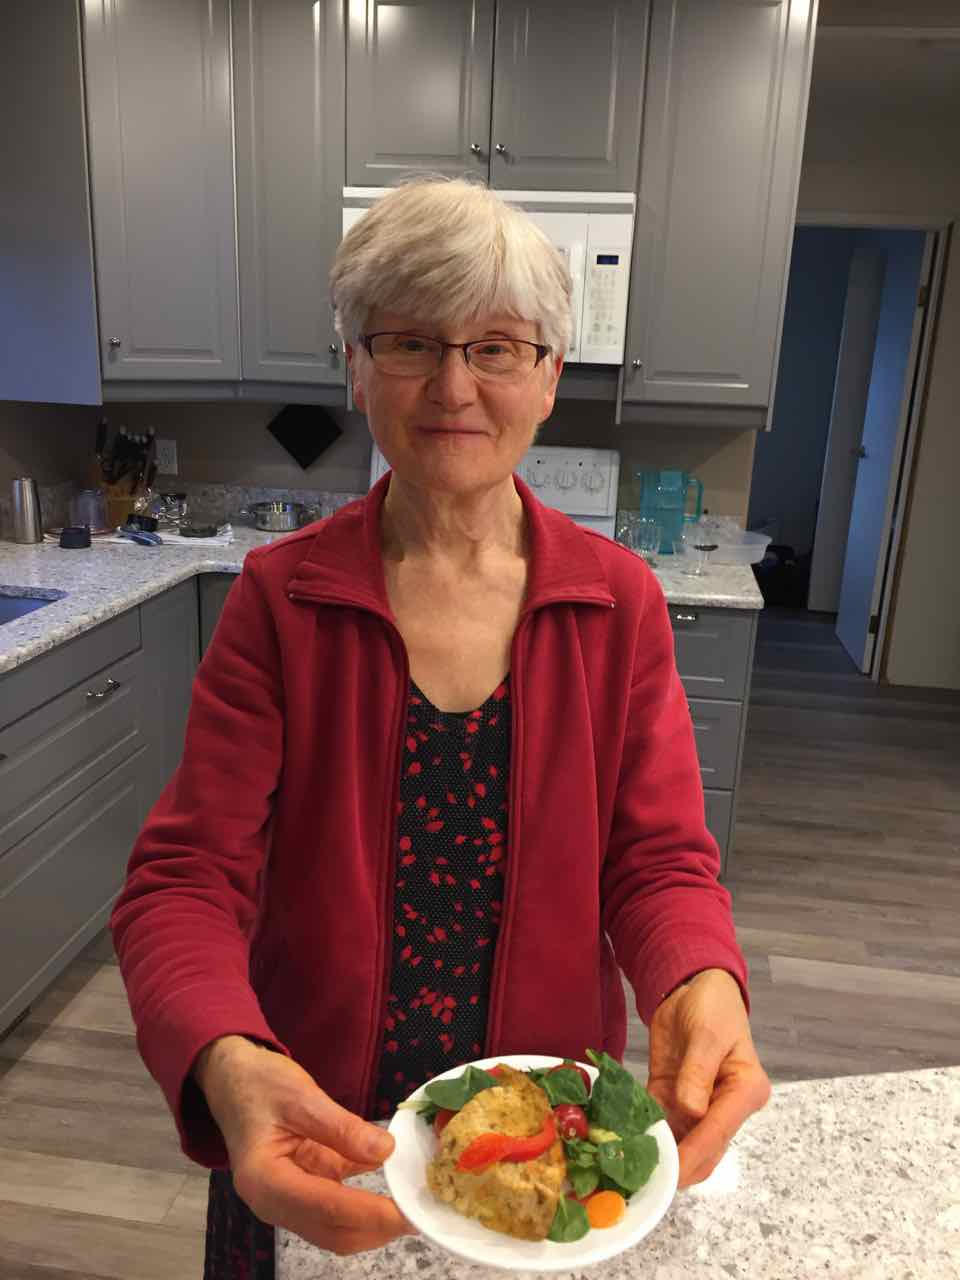 Image of Daisy Perry (my mom) presenting a piece of her gluten free easy vegan tofu quiche.